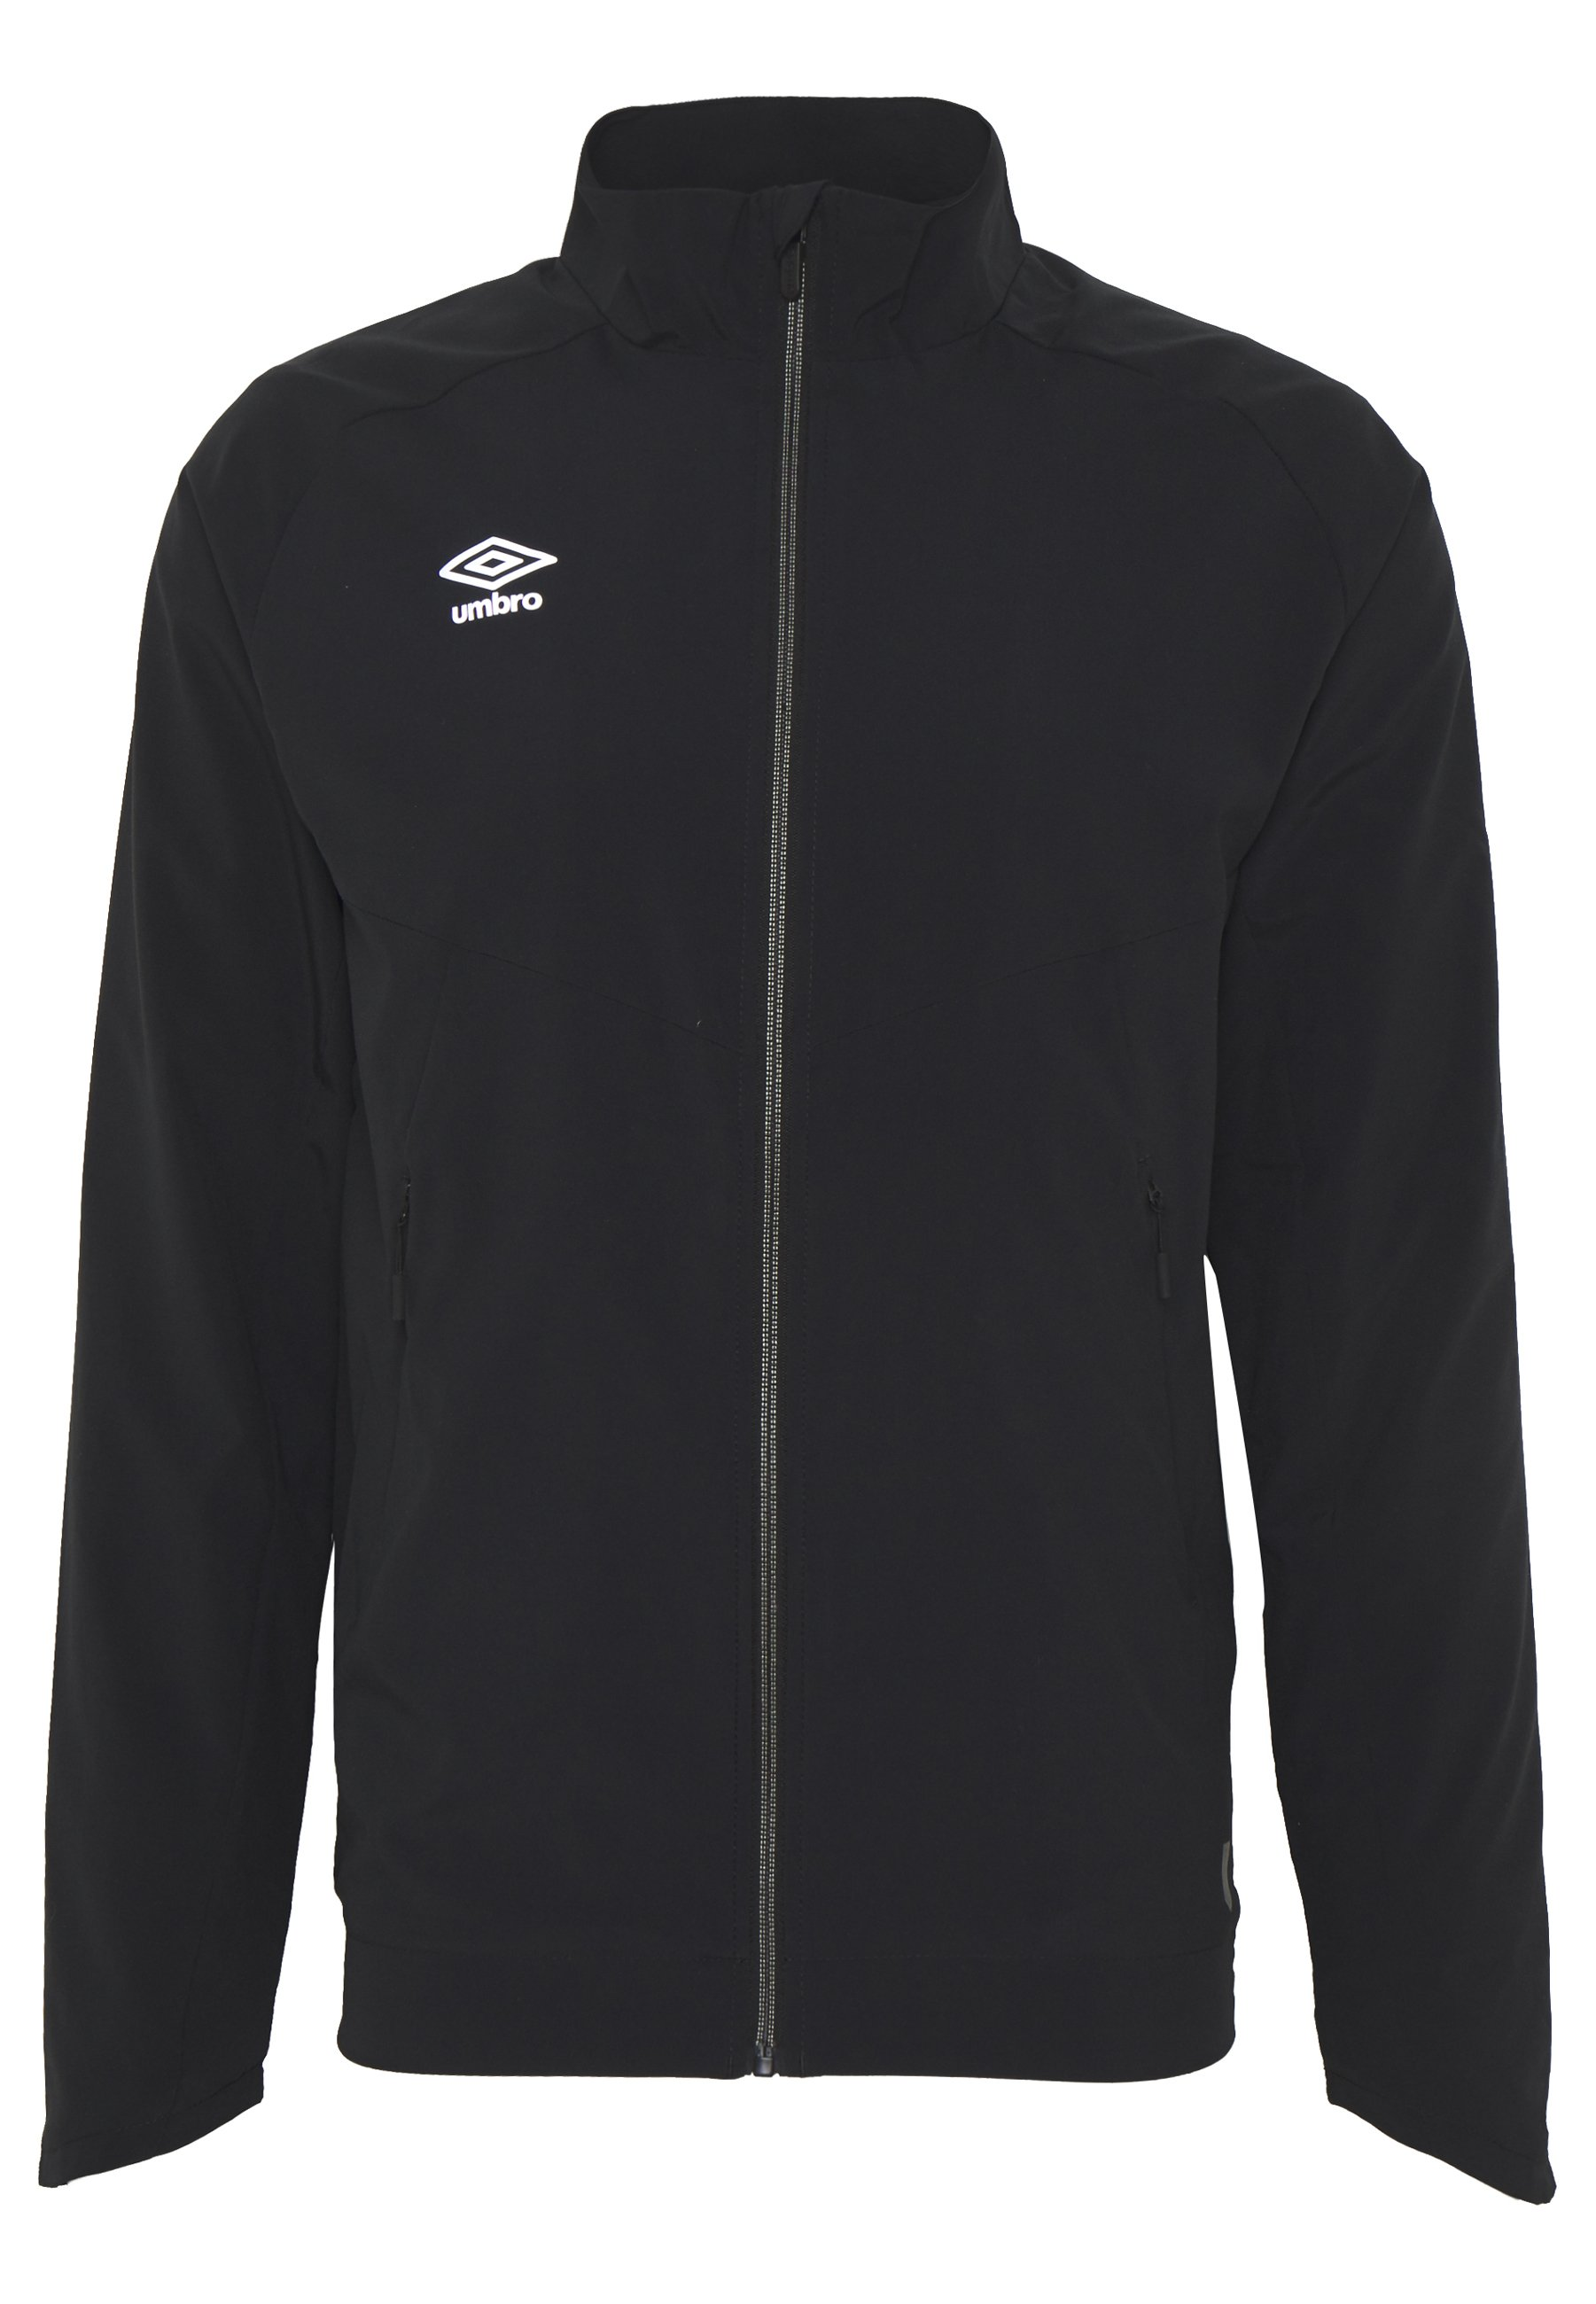 Umbro TRAINING JACKET - Kurtka sportowa - black